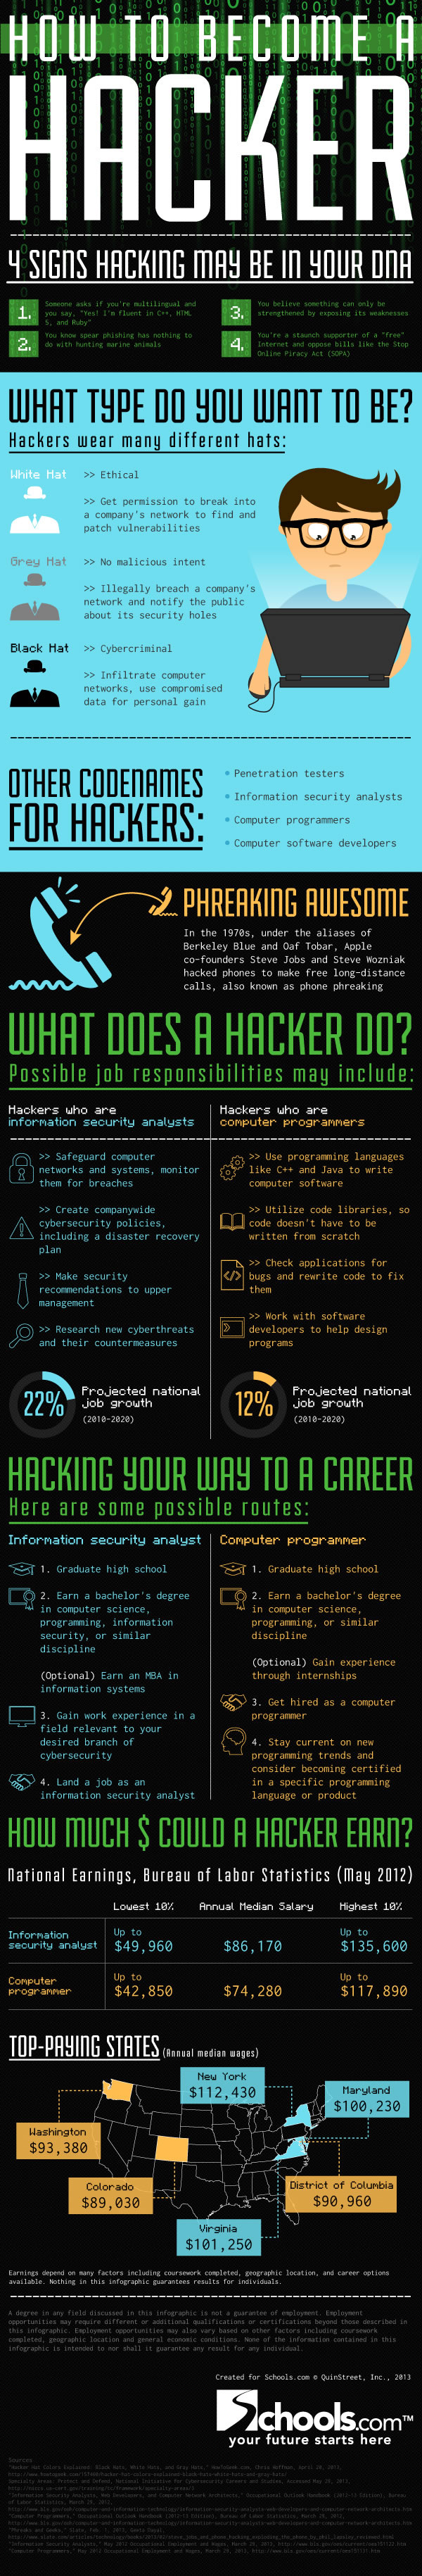 Different types of hackers and their job responsibilities